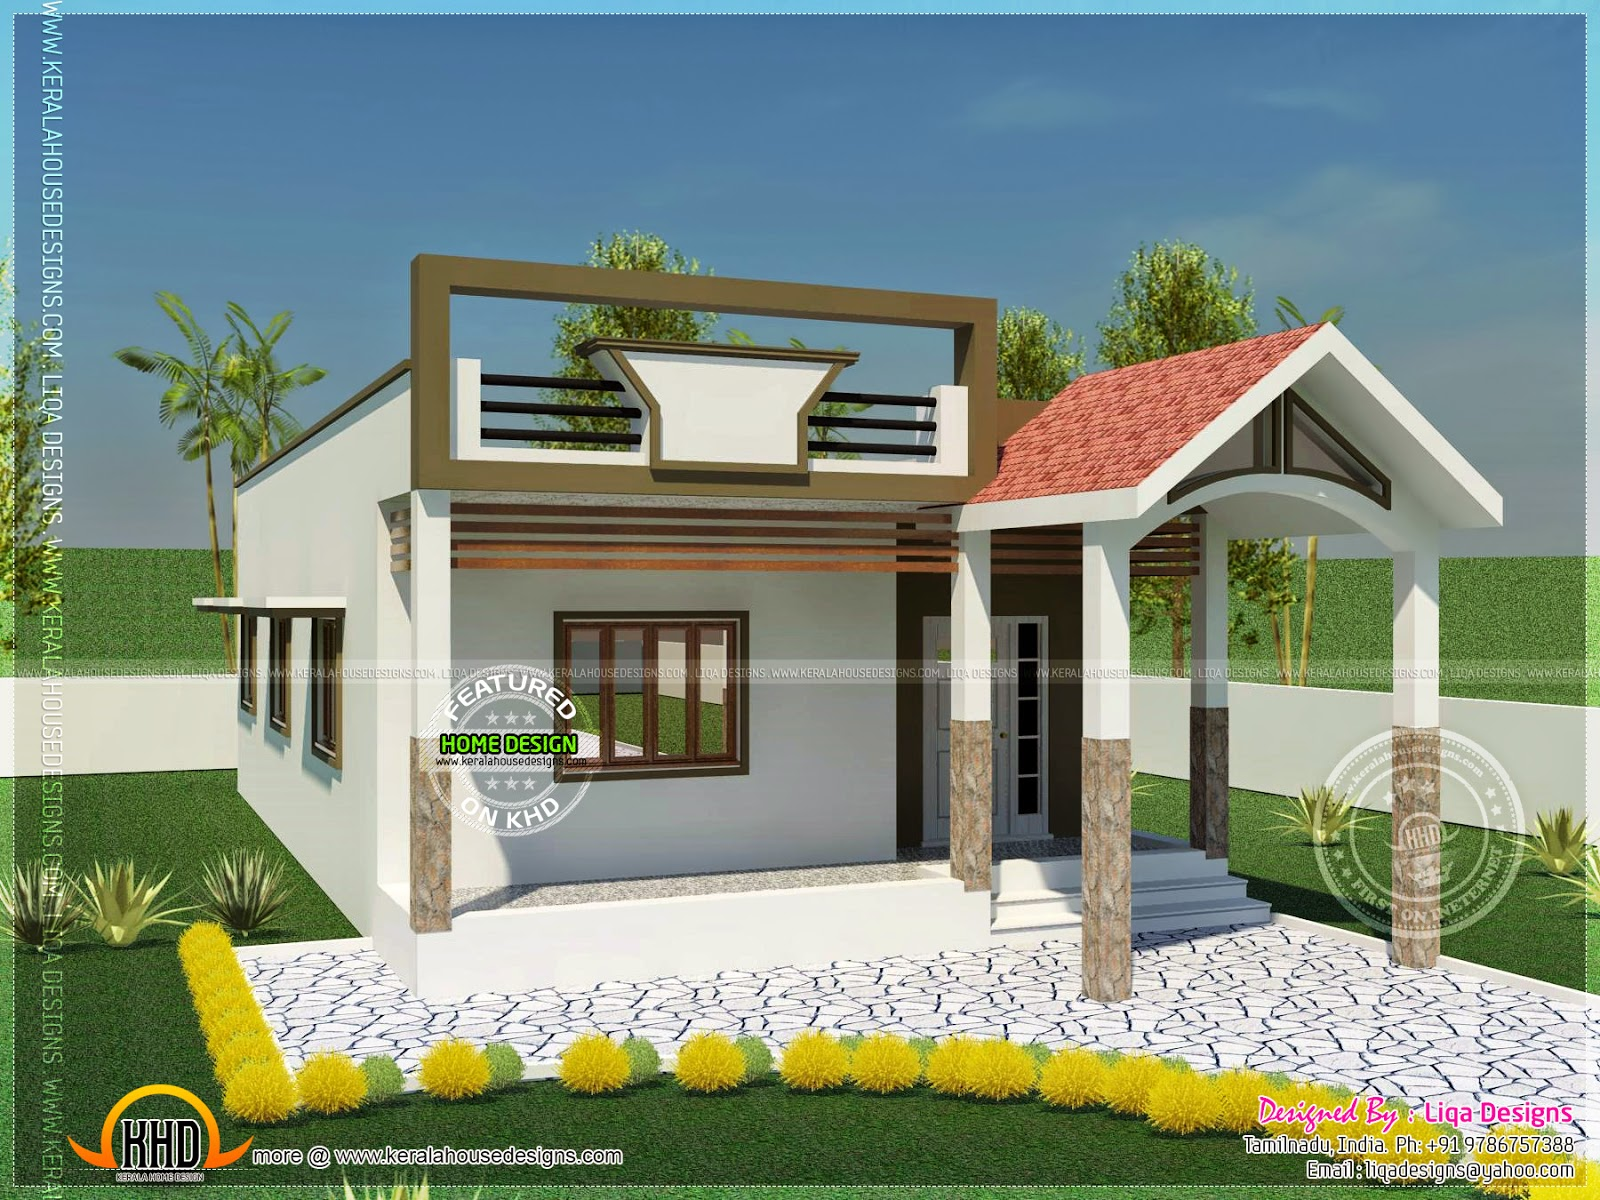 740 square feet single storied house kerala home design for Single floor house elevations indian style